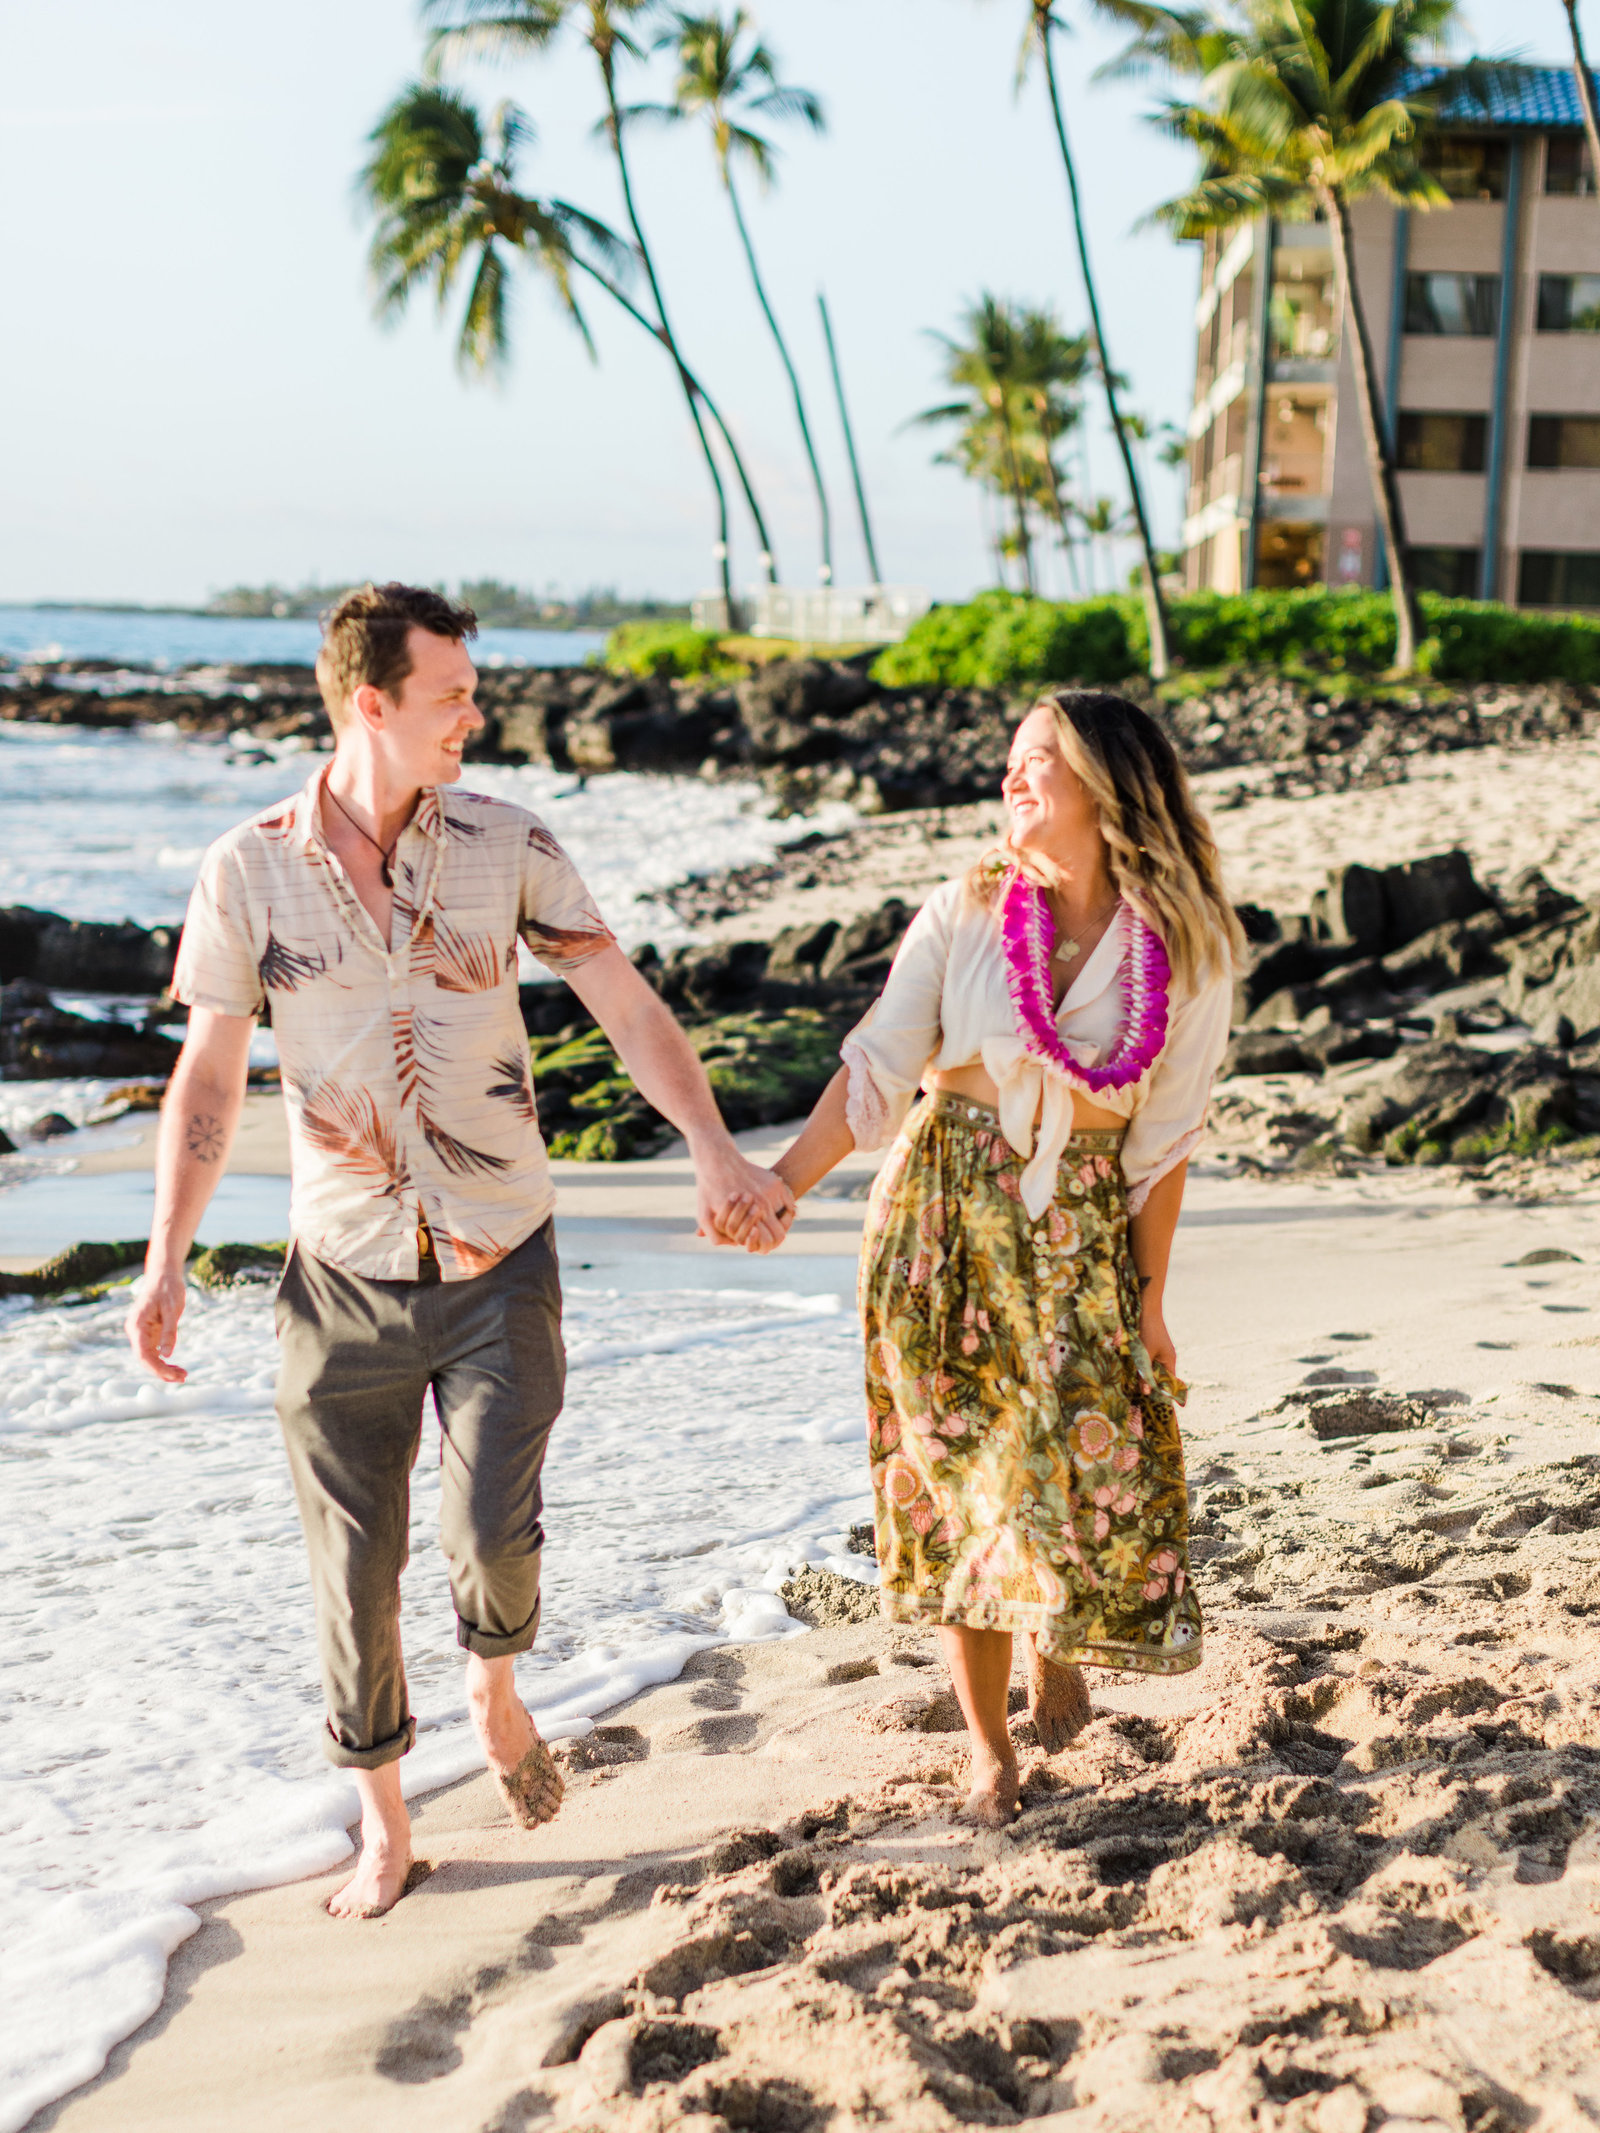 SOC_2019_HawaiiPhotoshoot_WEB (89 of 144)